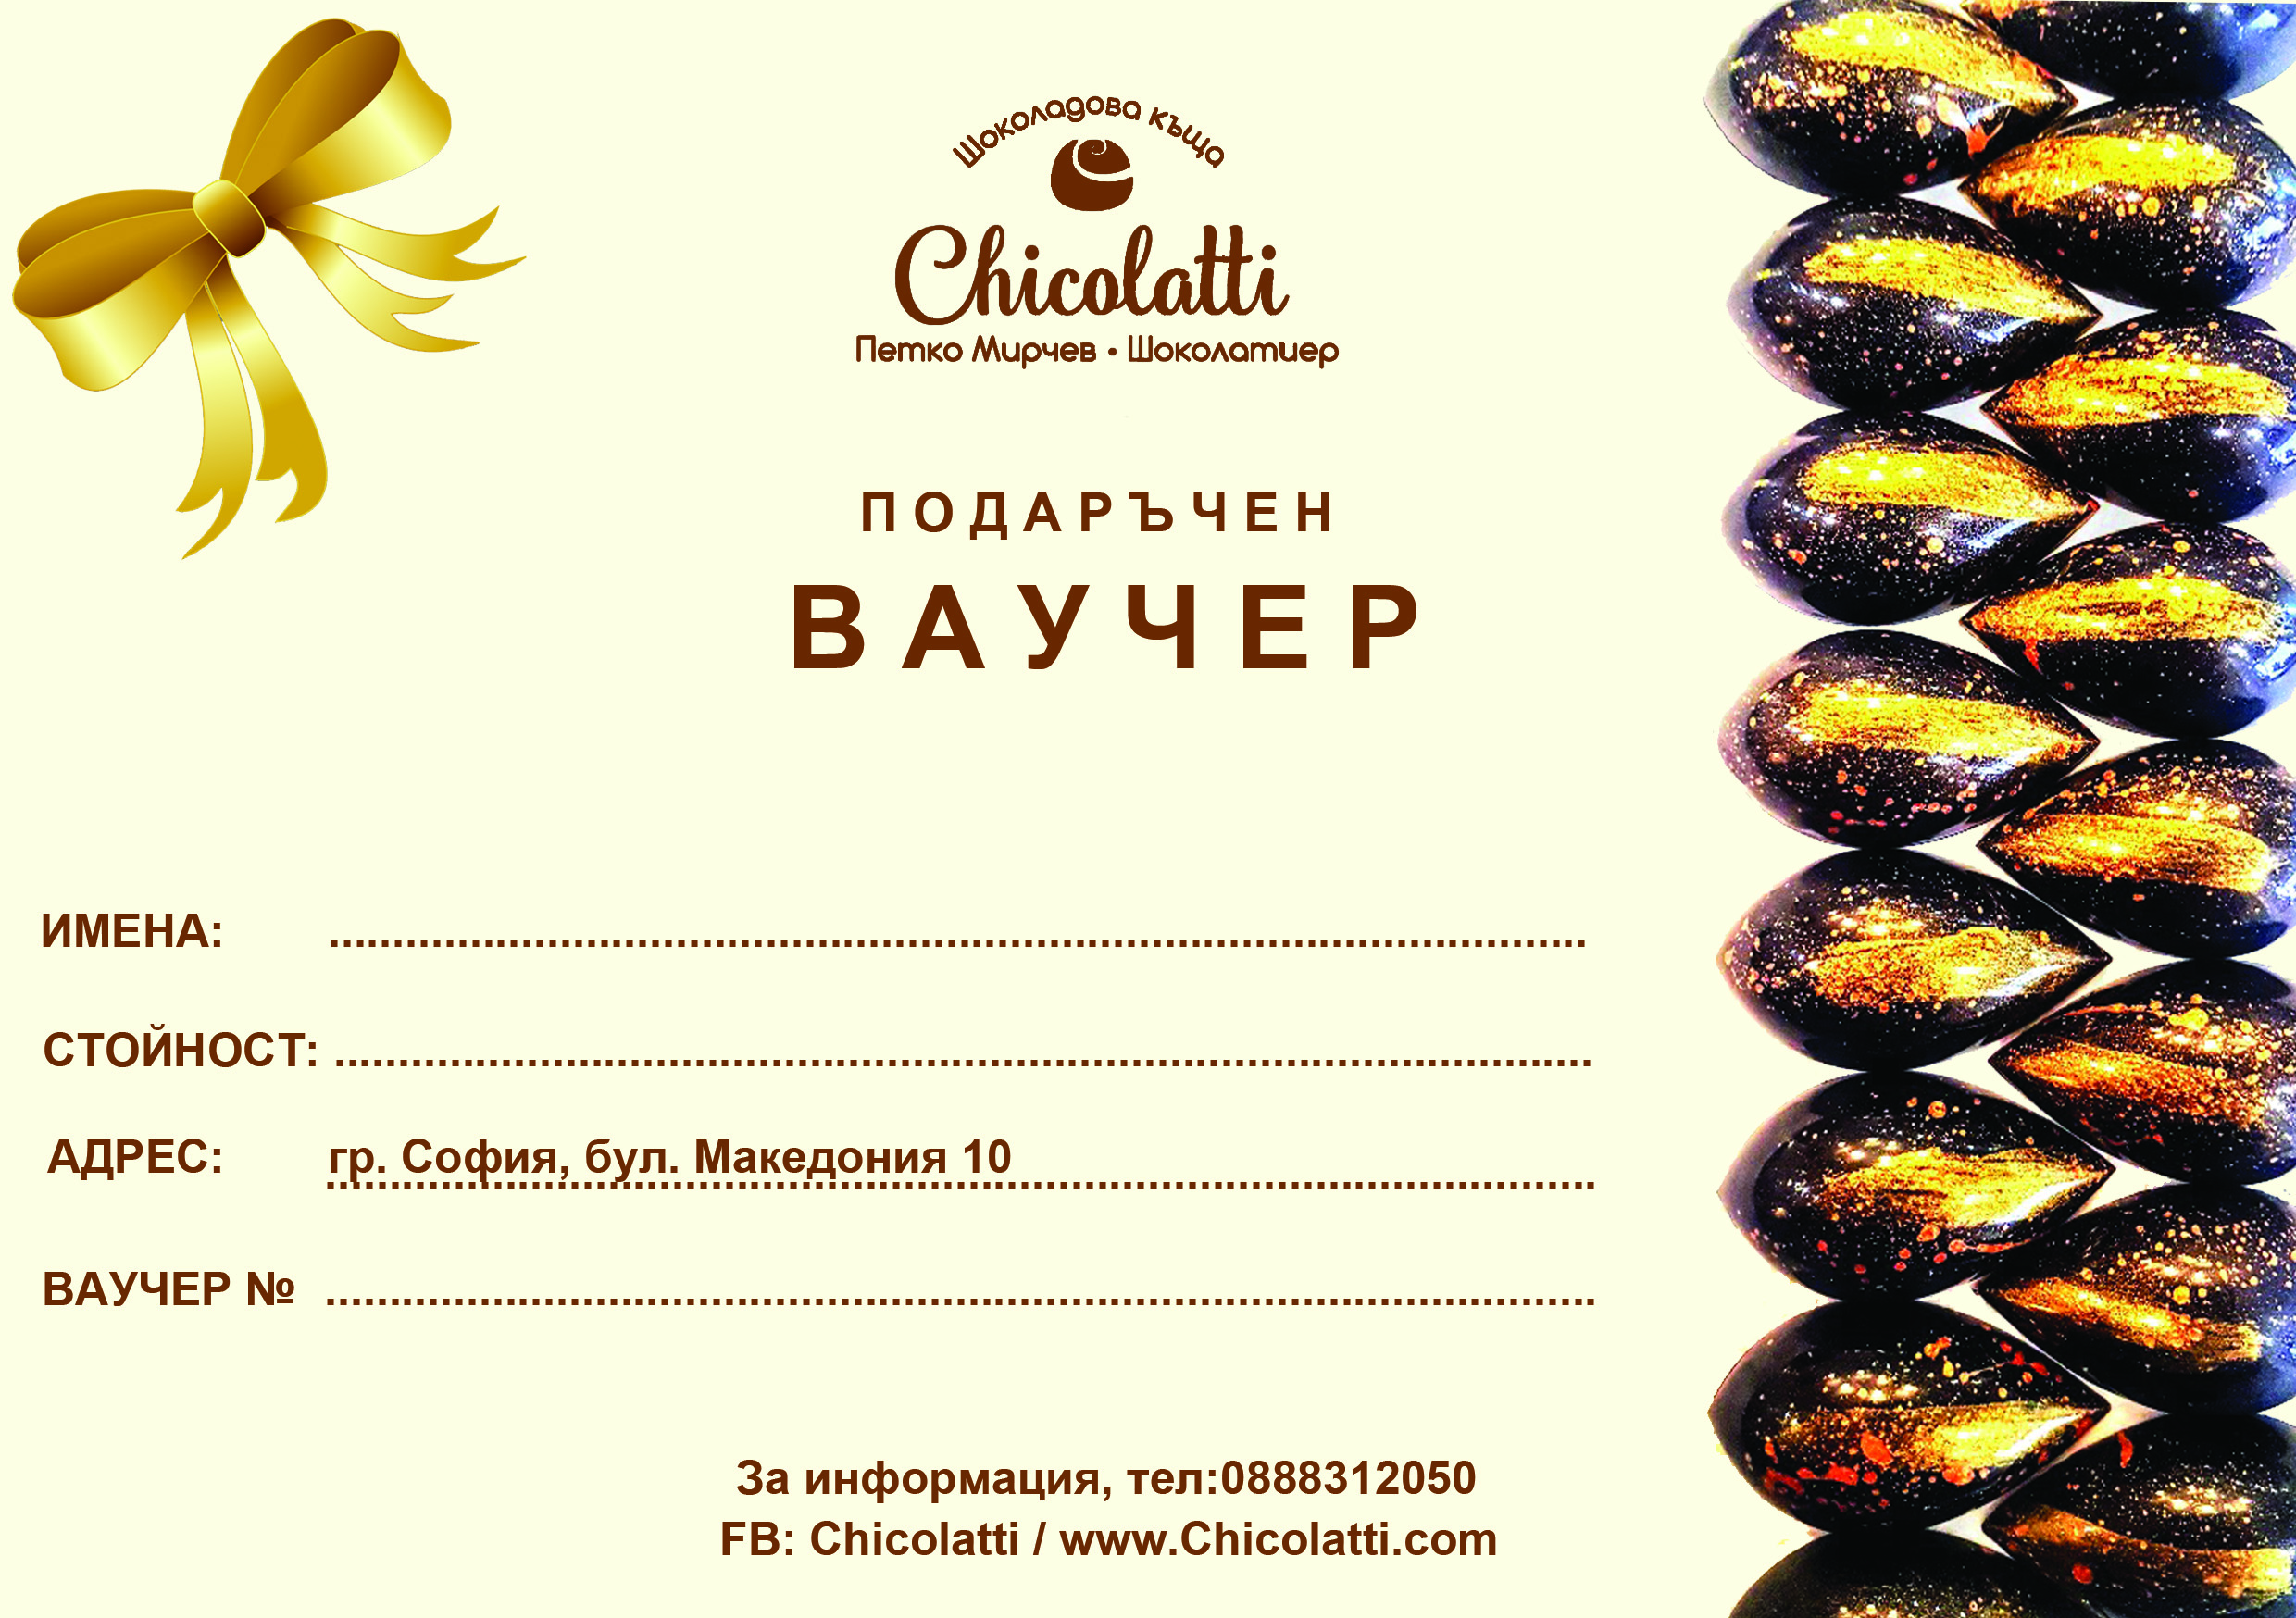 voucher for a gift